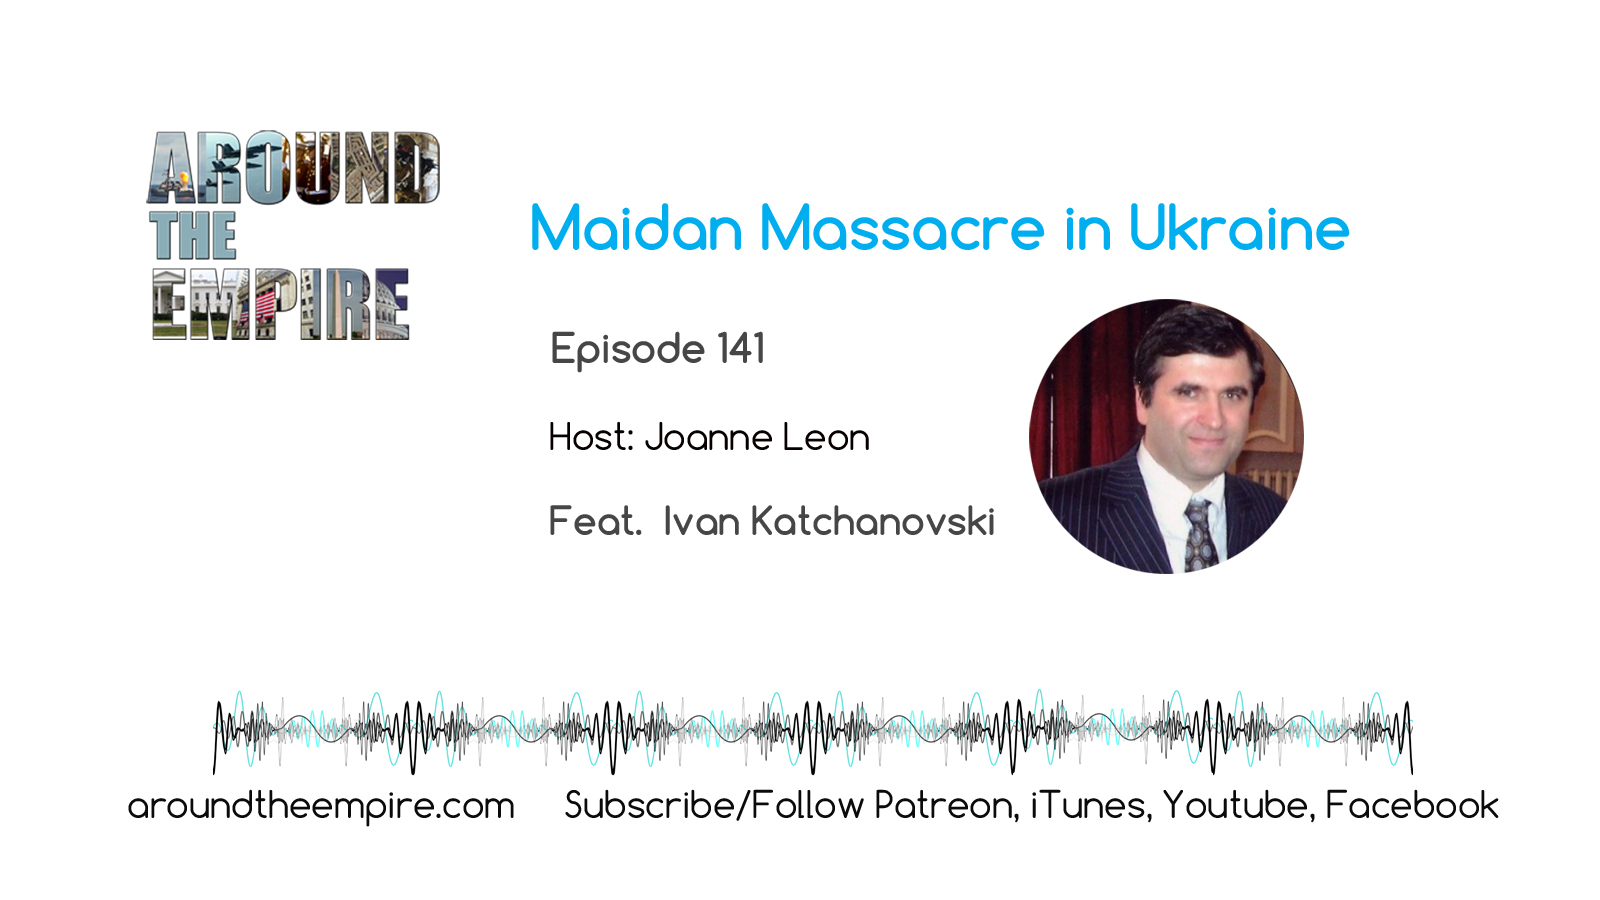 Ep 141 Maidan Massacre in Ukraine feat Ivan Katchanovski